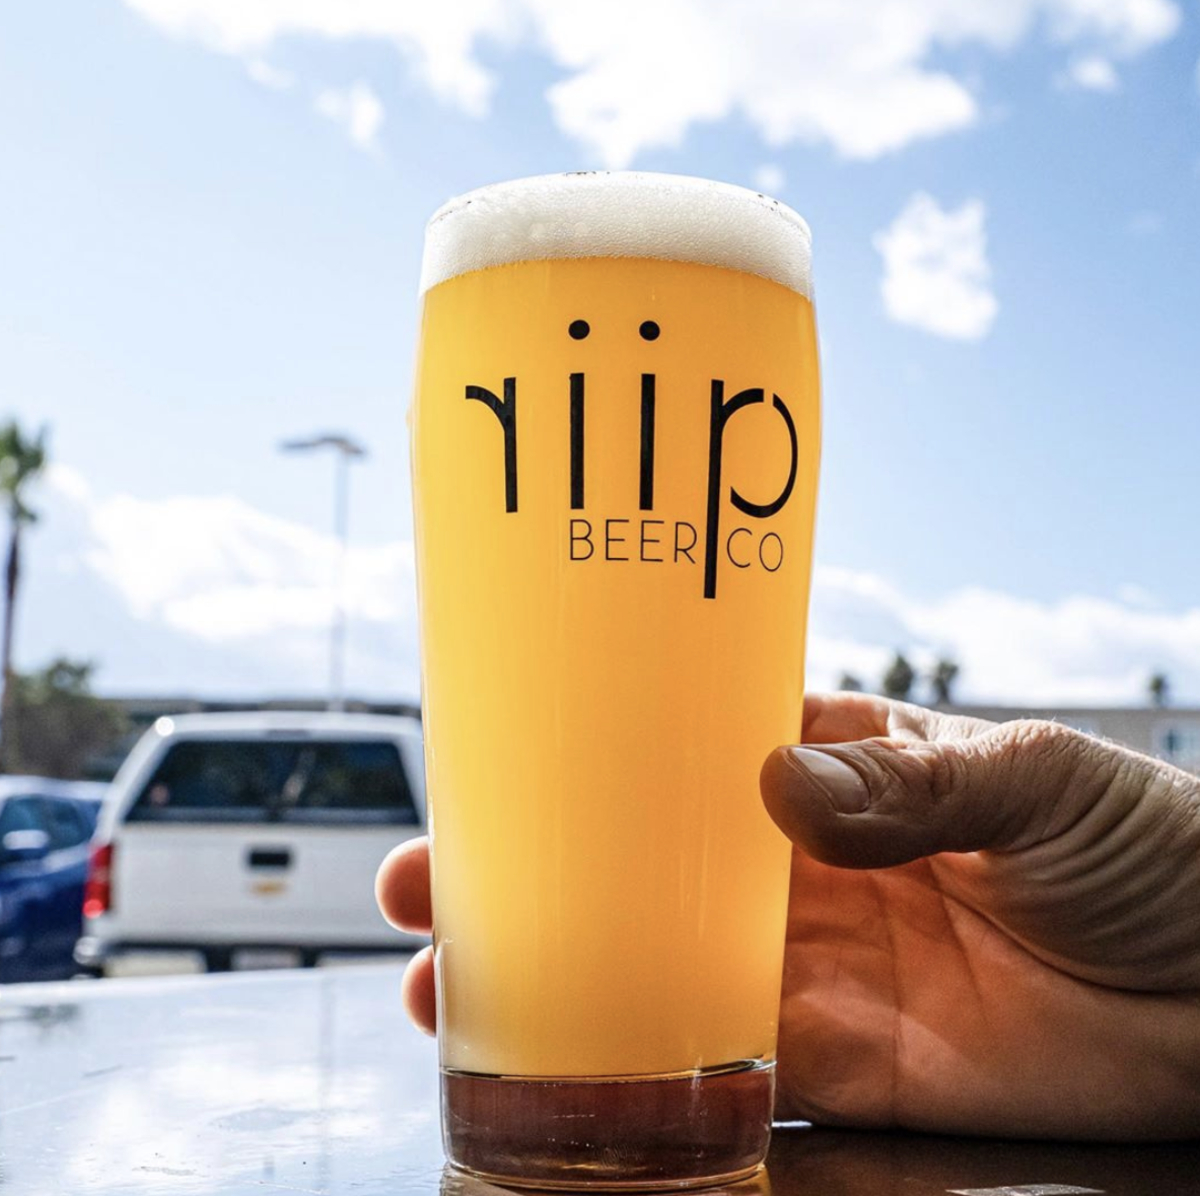 RIIP Beer Co in Huntington Beach